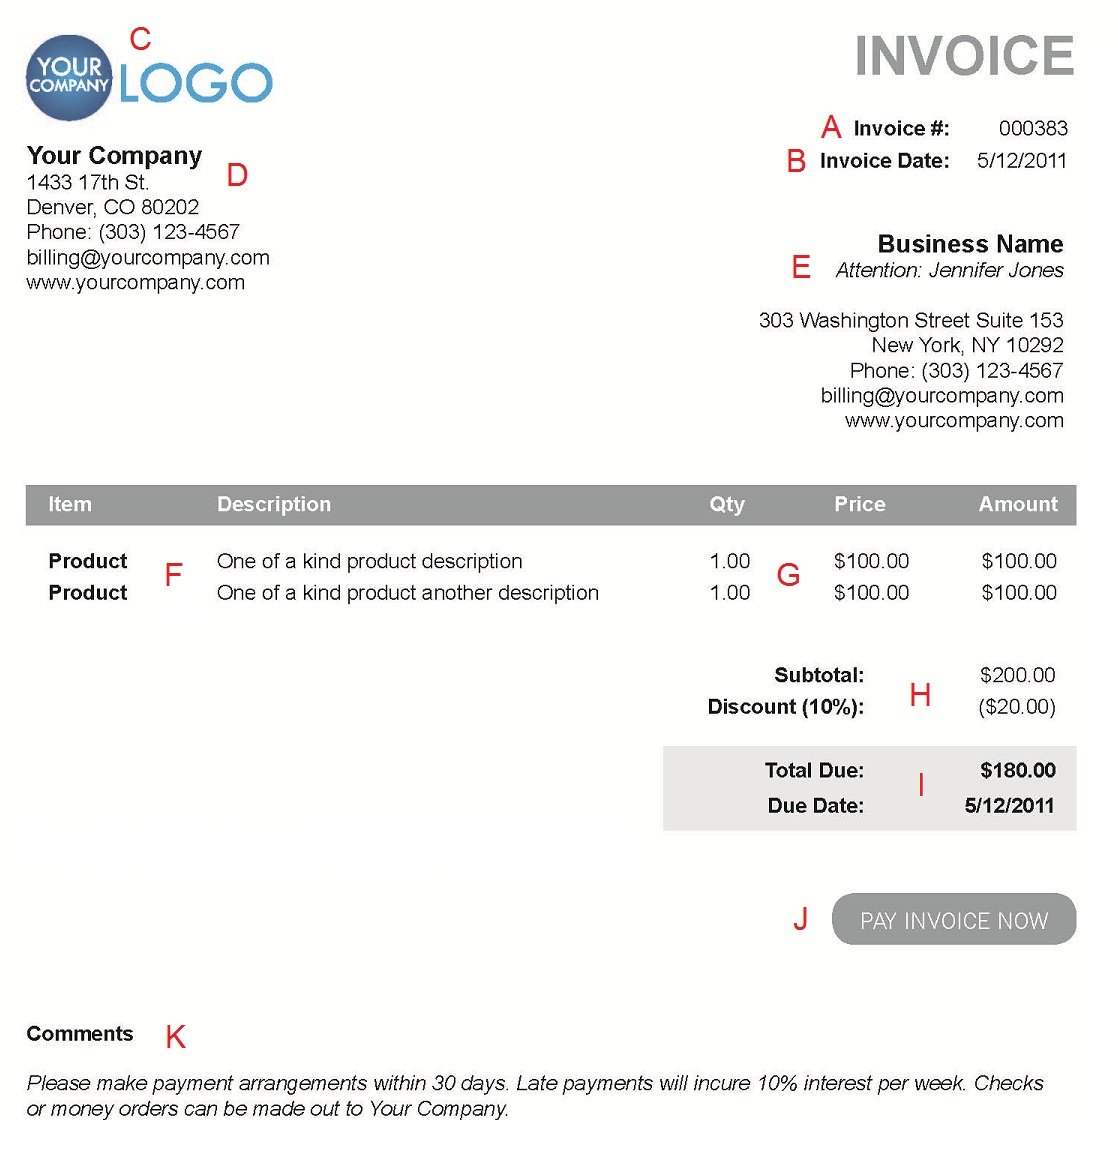 Aldiablosus  Surprising The  Different Sections Of An Electronic Payment Invoice With Magnificent A  With Lovely Tax Invoice Examples Also Best Invoicing Software For Small Businesses In Addition Shipping Invoices And Invoice Log Template As Well As Online Invoicing Service Additionally Interim Invoice Definition From Paysimplecom With Aldiablosus  Magnificent The  Different Sections Of An Electronic Payment Invoice With Lovely A  And Surprising Tax Invoice Examples Also Best Invoicing Software For Small Businesses In Addition Shipping Invoices From Paysimplecom